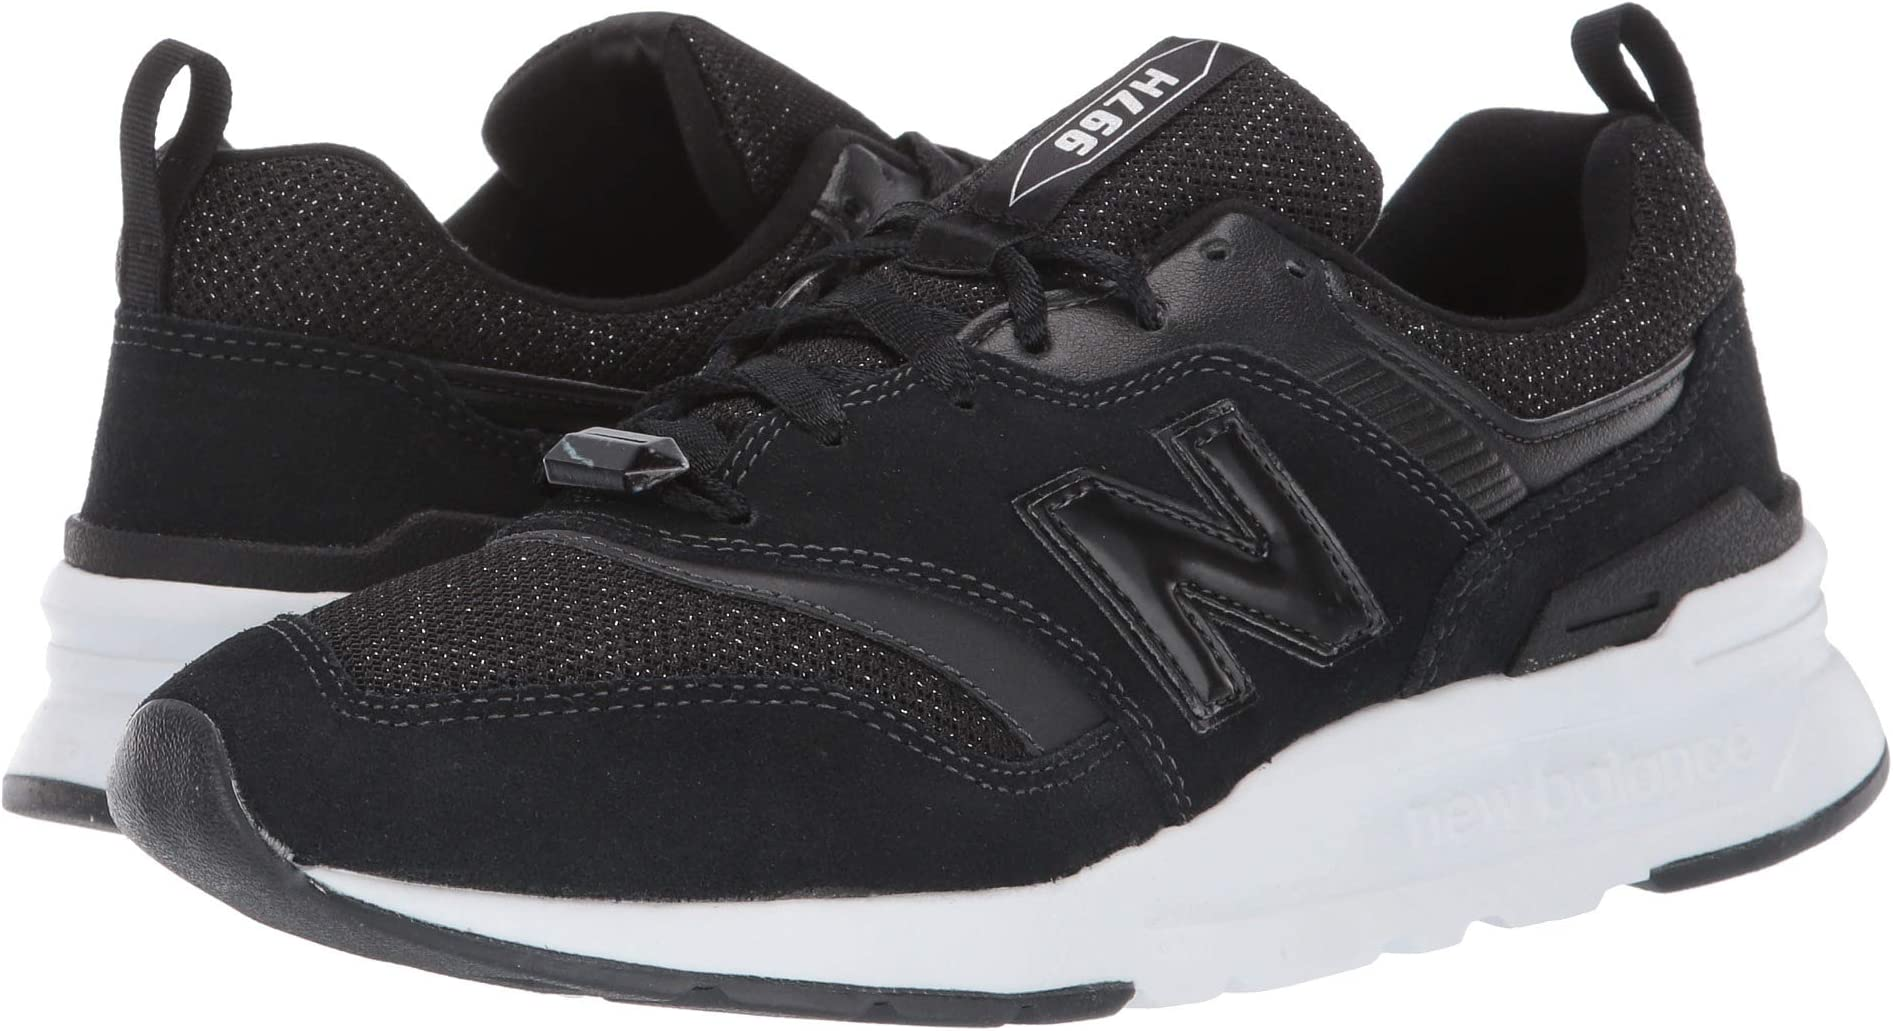 New Balance Shoes, Clothing, Accessories and More |